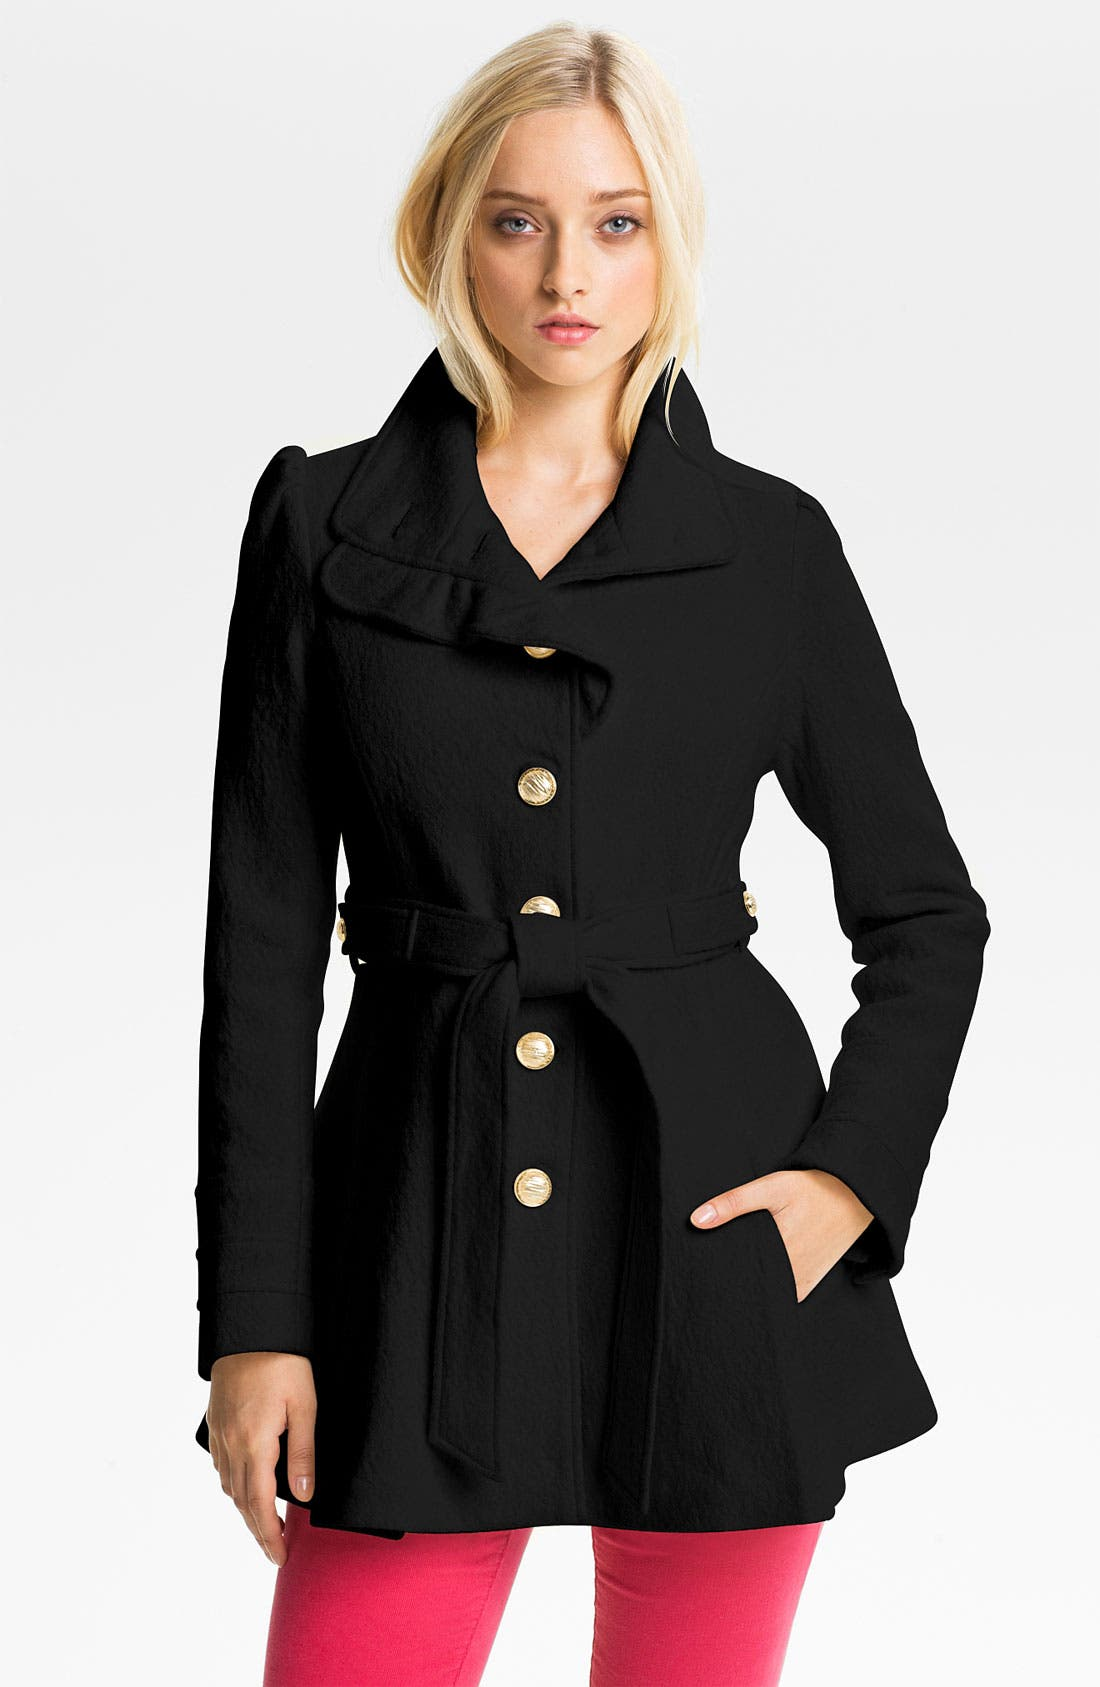 Alternate Image 1 Selected - bebe Ruffle Trim Belted Coat